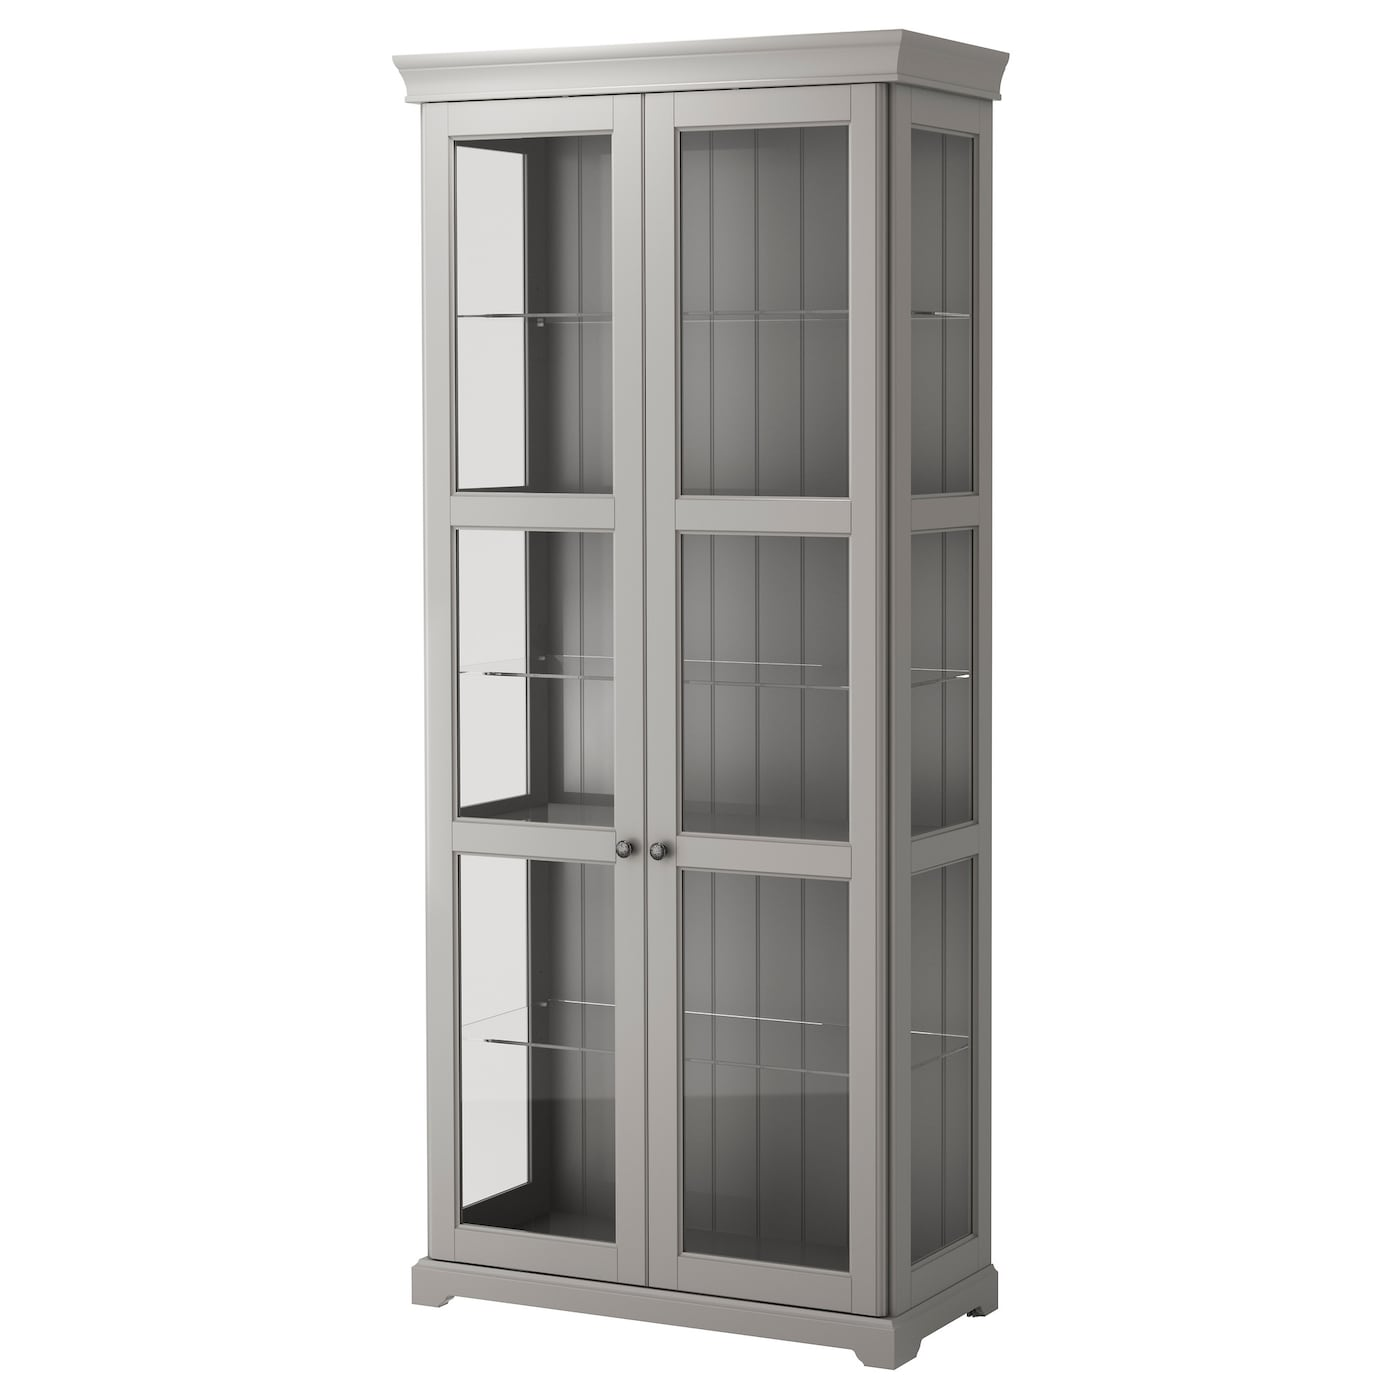 liatorp glass door cabinet grey 96x214 cm ikea. Black Bedroom Furniture Sets. Home Design Ideas